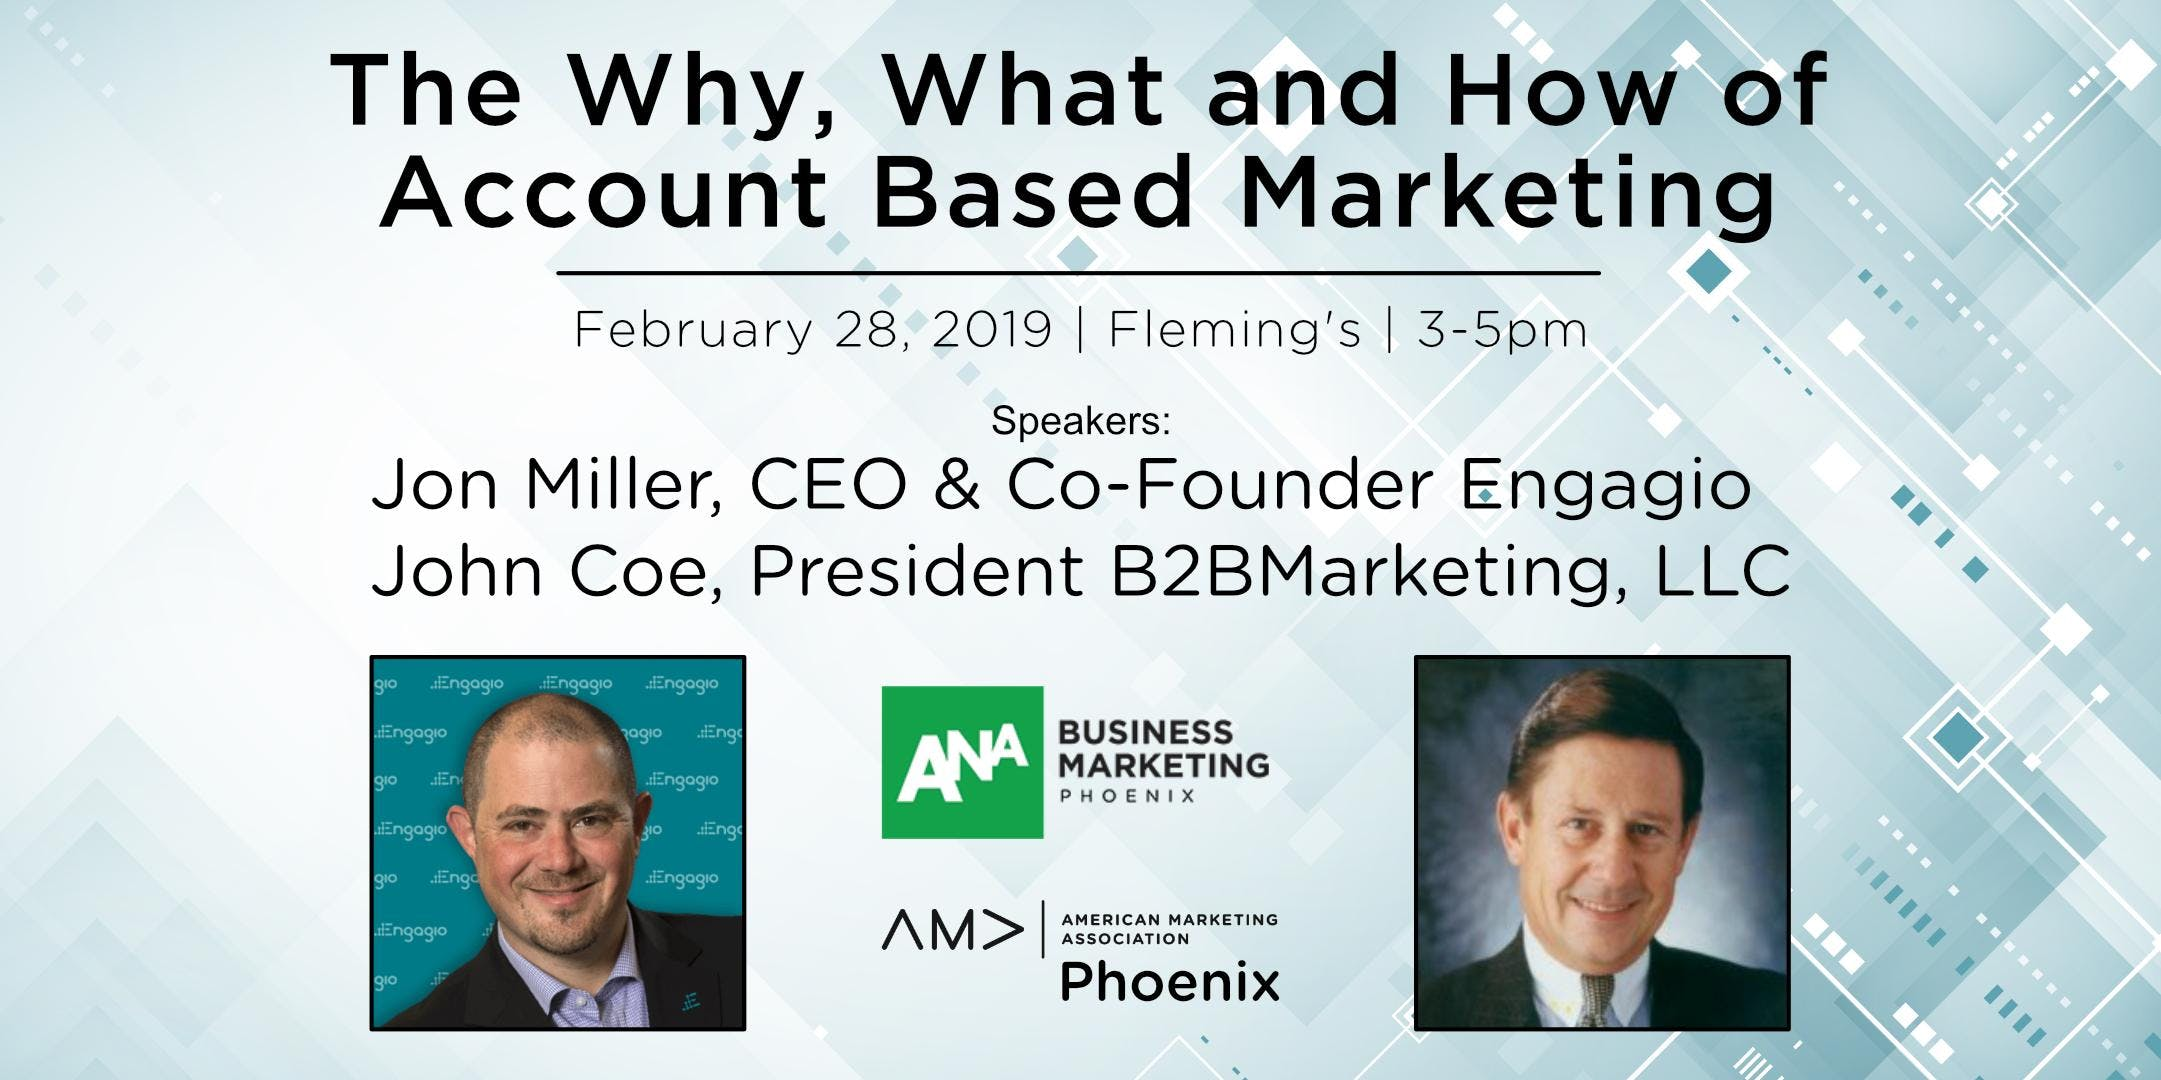 The Why, What and How of Account Based Marketing  - Joint AMA Phoenix and ANA Phoenix Event